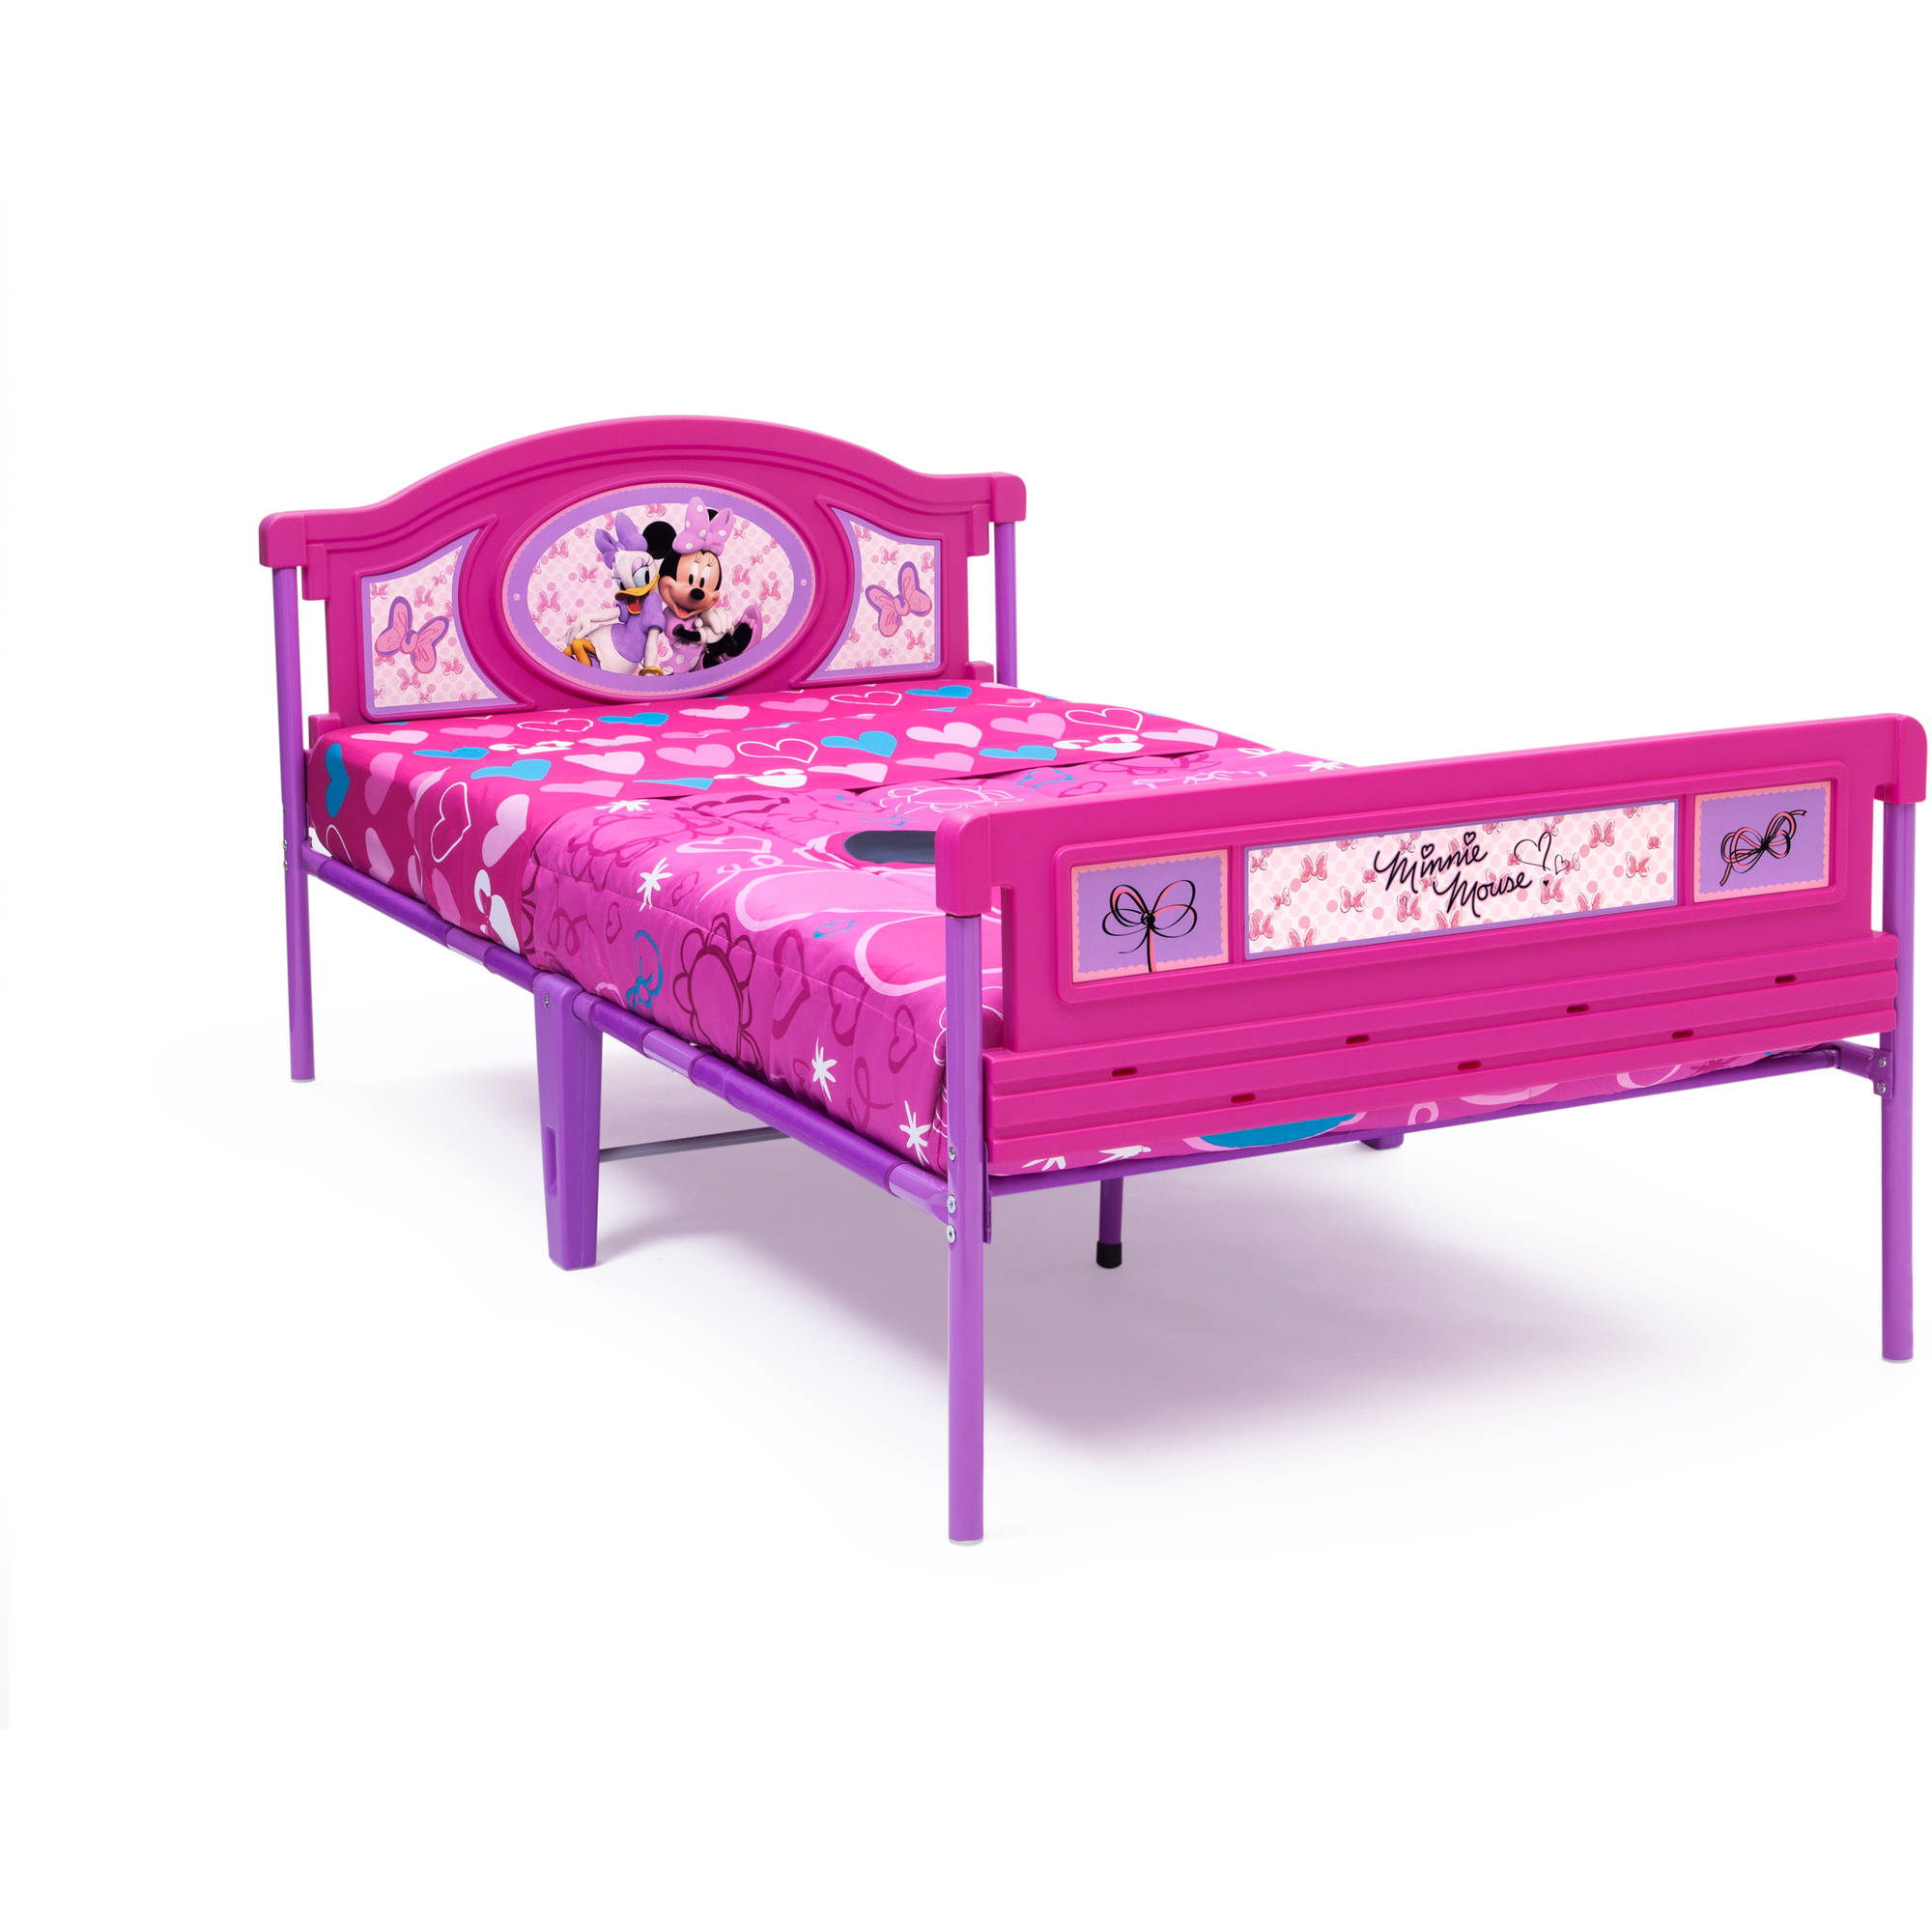 Collection toddler bed and mattress set full size of bed frames:minnie mouse toddler bed walmart minnie mouse toddler jqjiojz